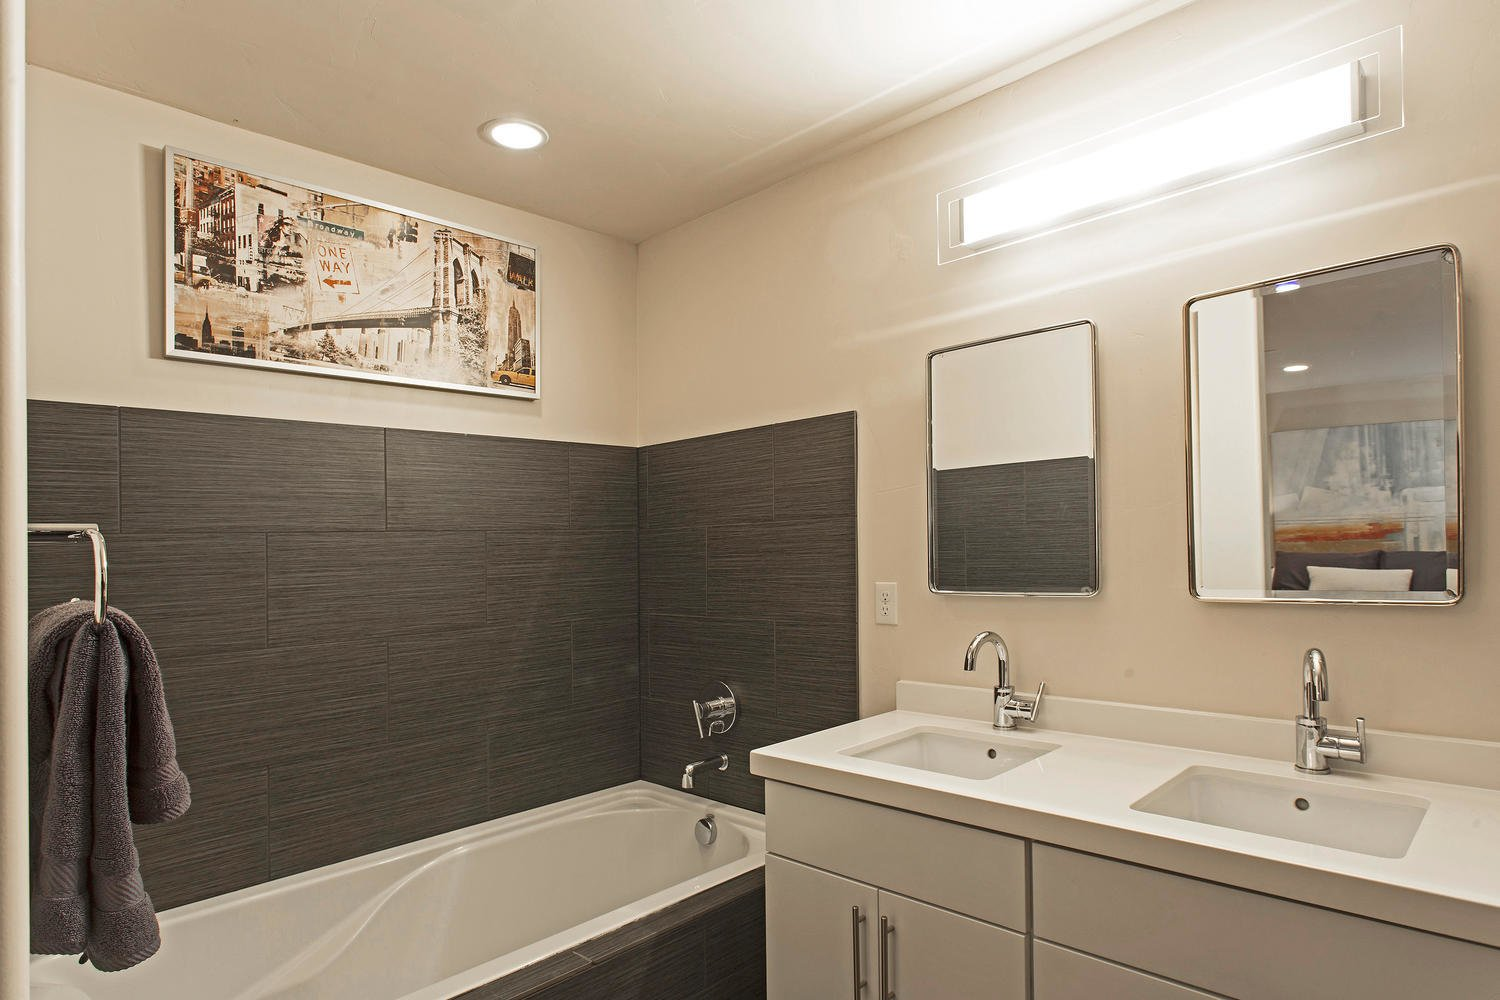 Photo 8 of 9 in Be at Home With Park City's Slopes For $1.6M